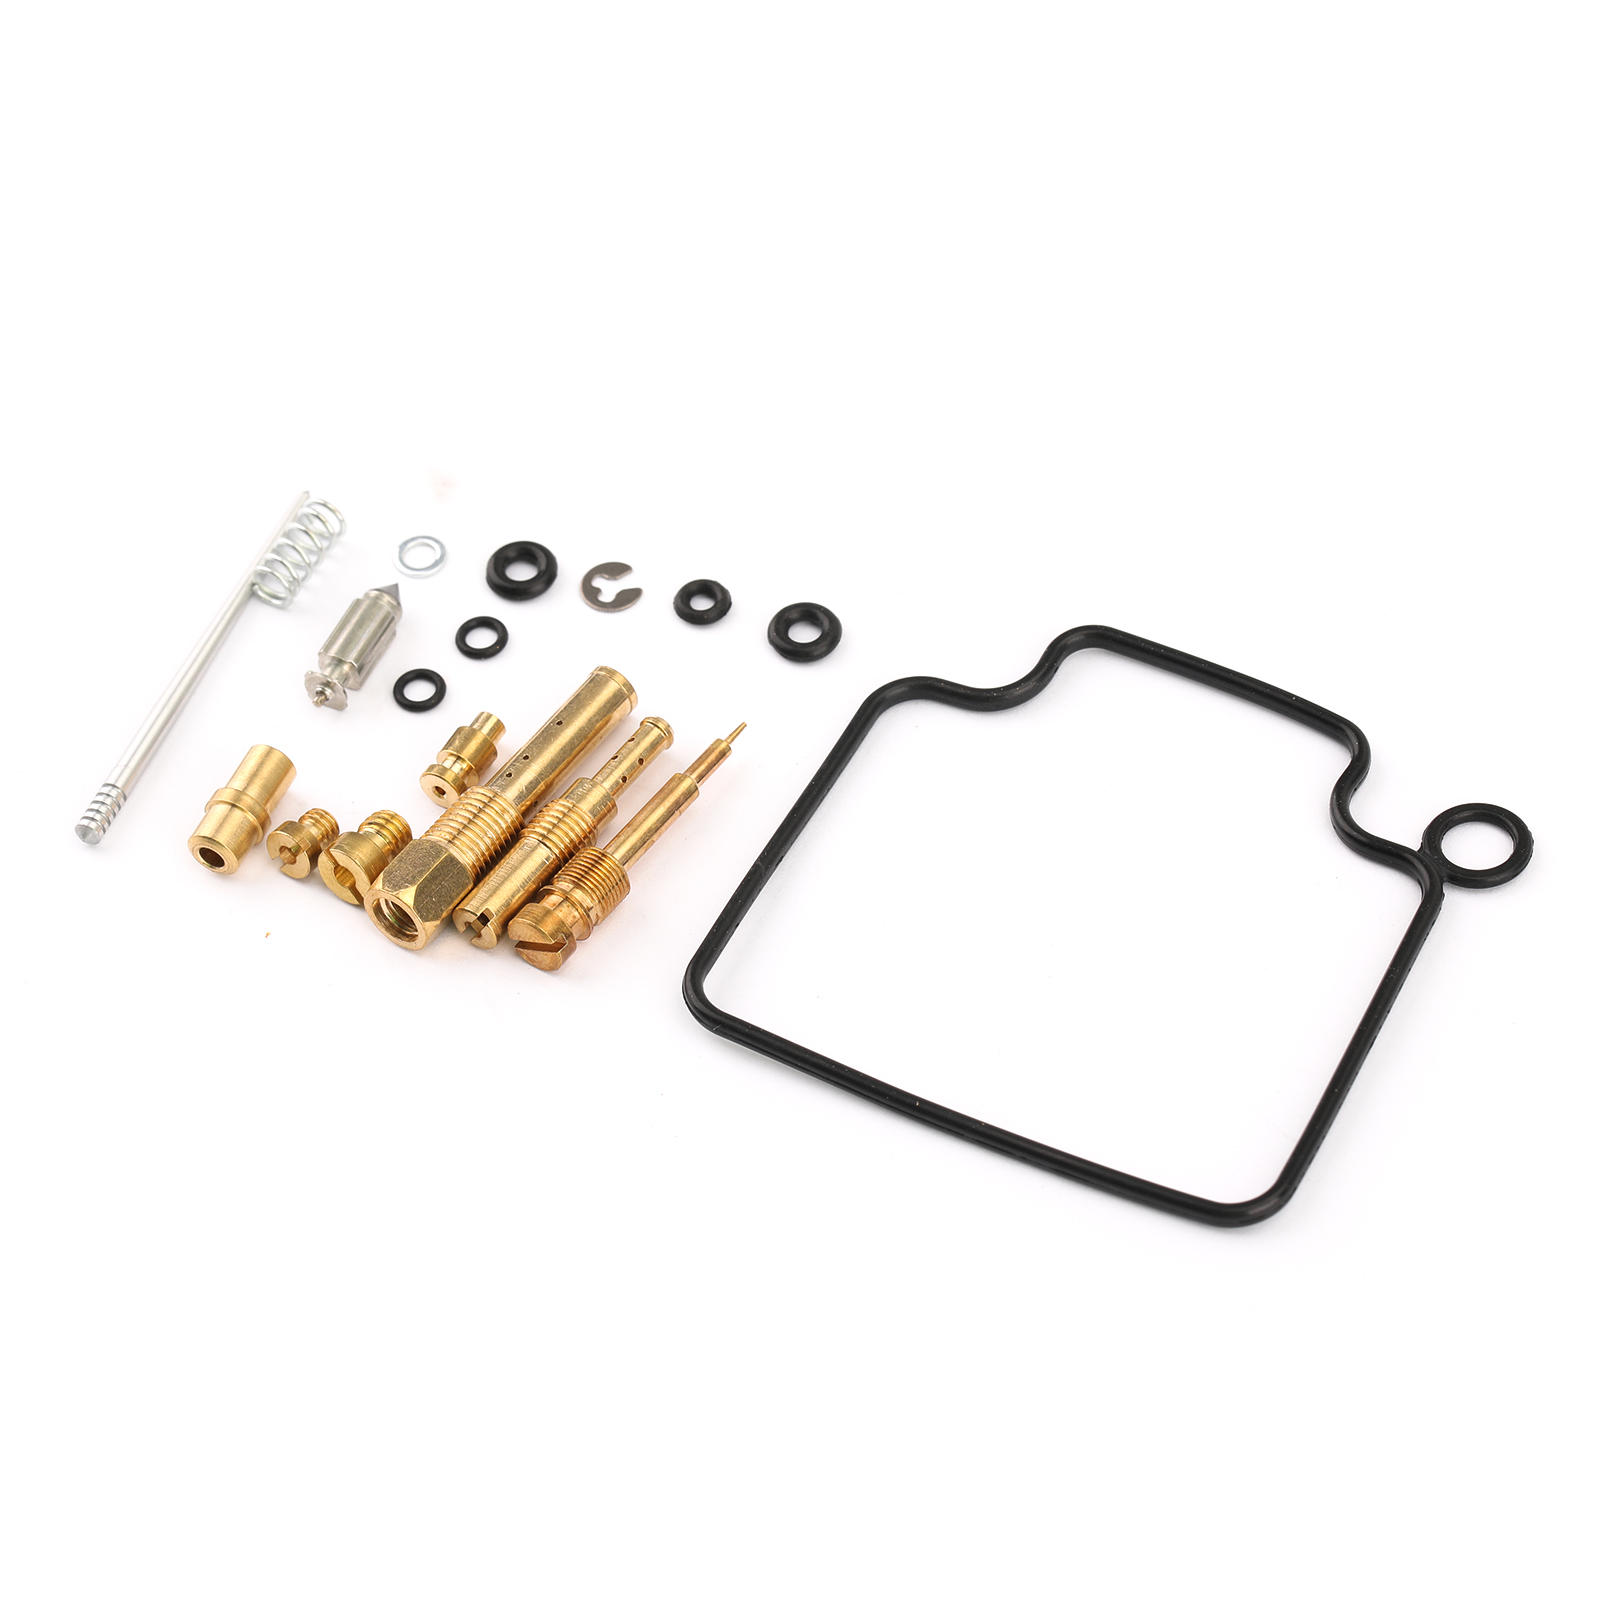 2001 honda rubicon 500 carburetor rebuild kit